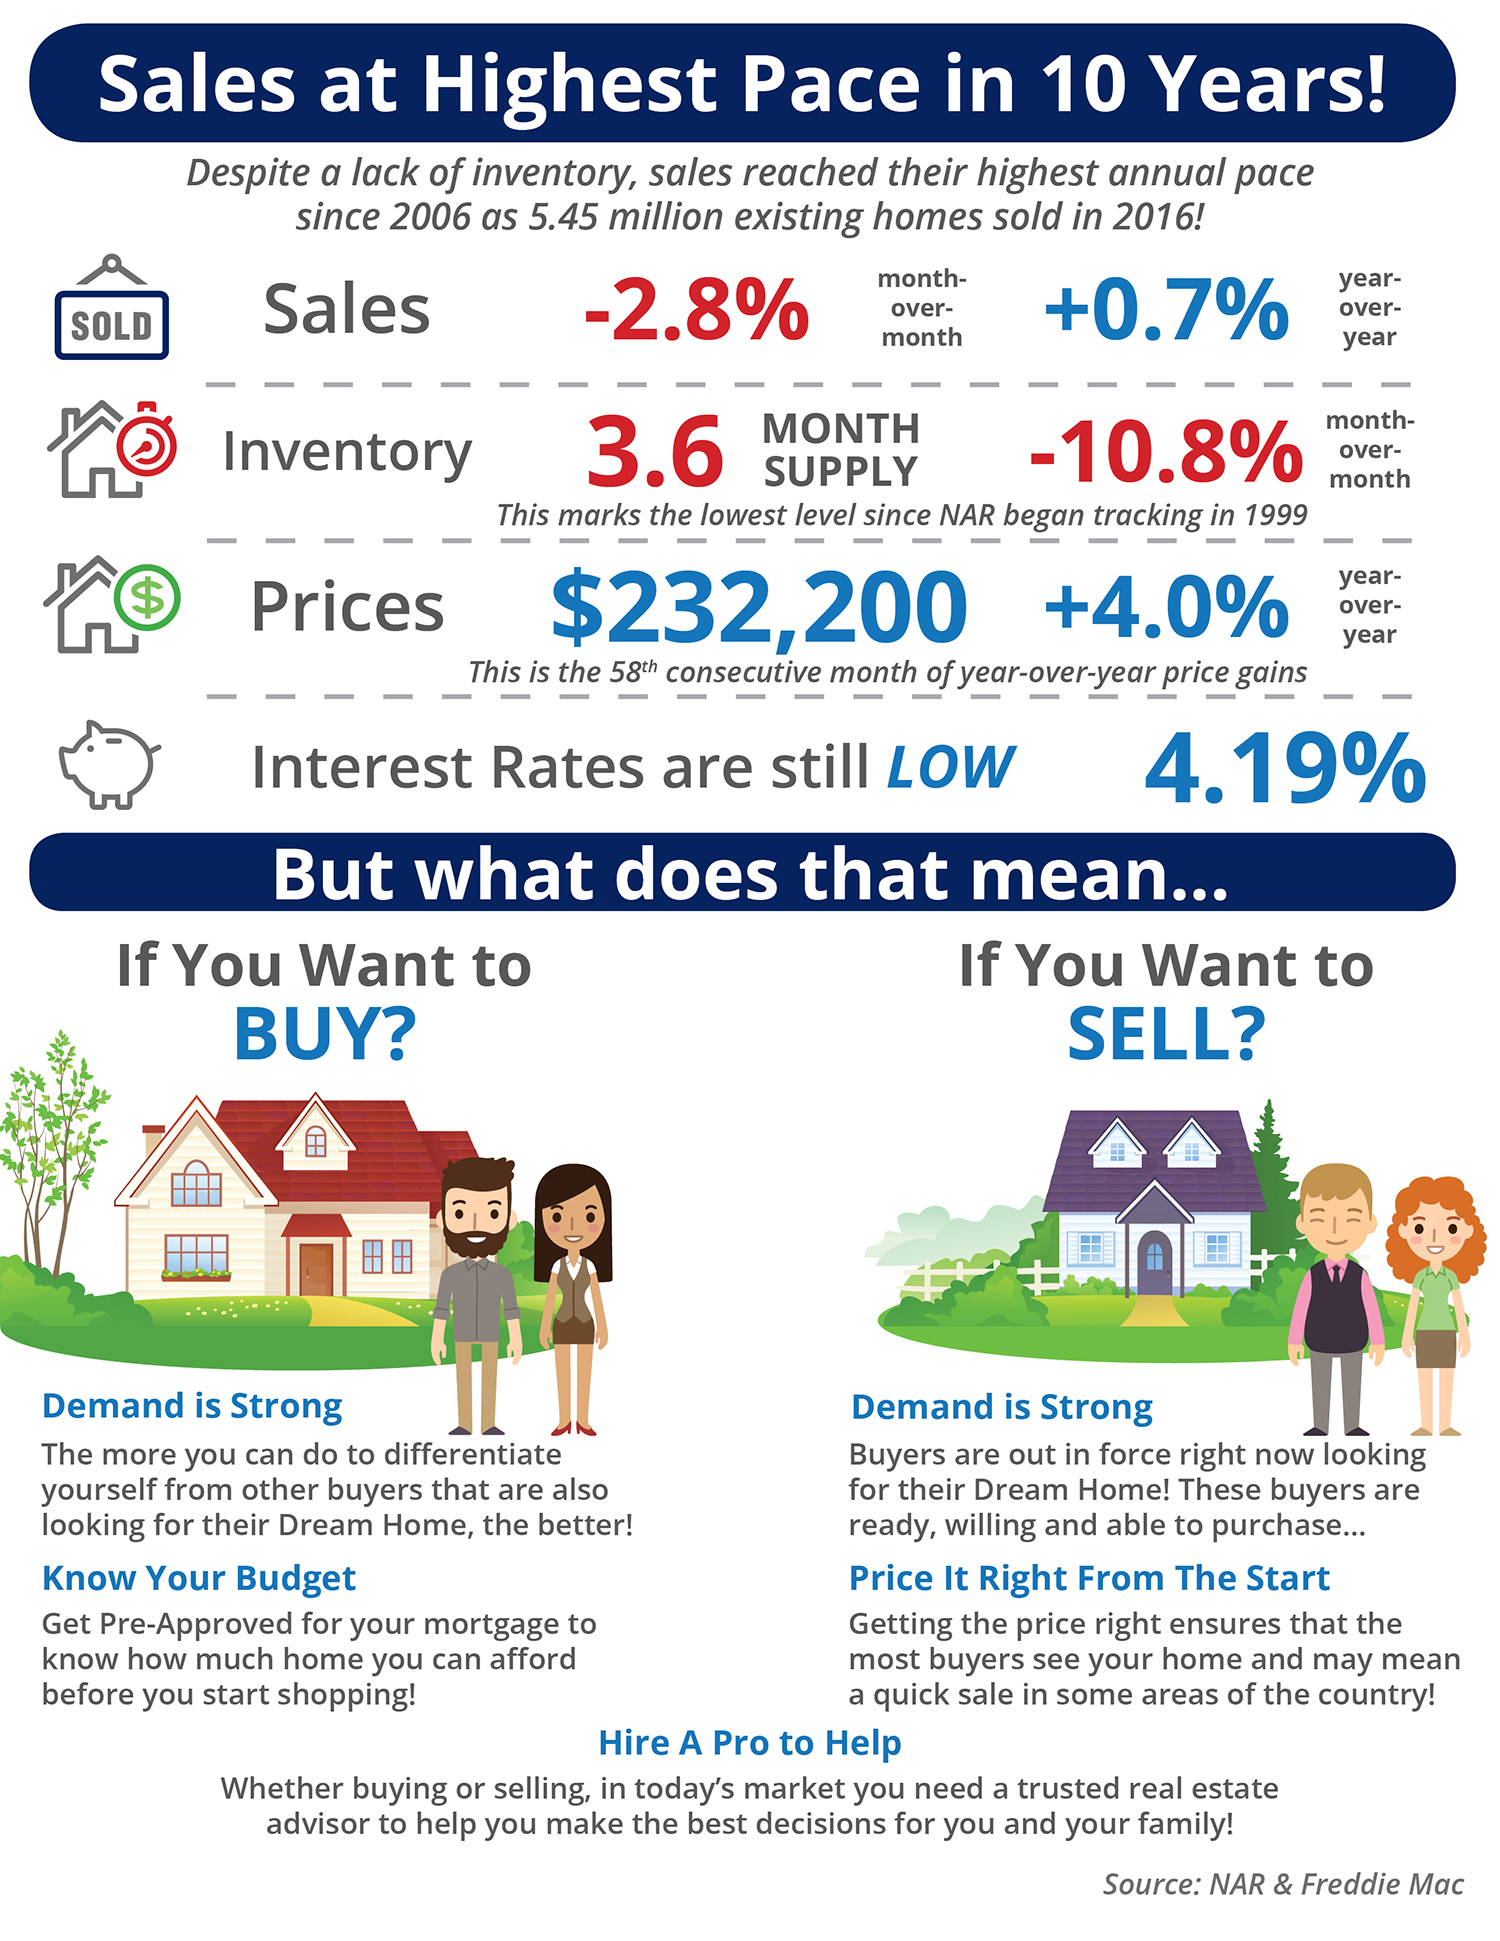 Sales at Highest Pace in 10 Years! [INFOGRAPHIC] | Bridge Builders